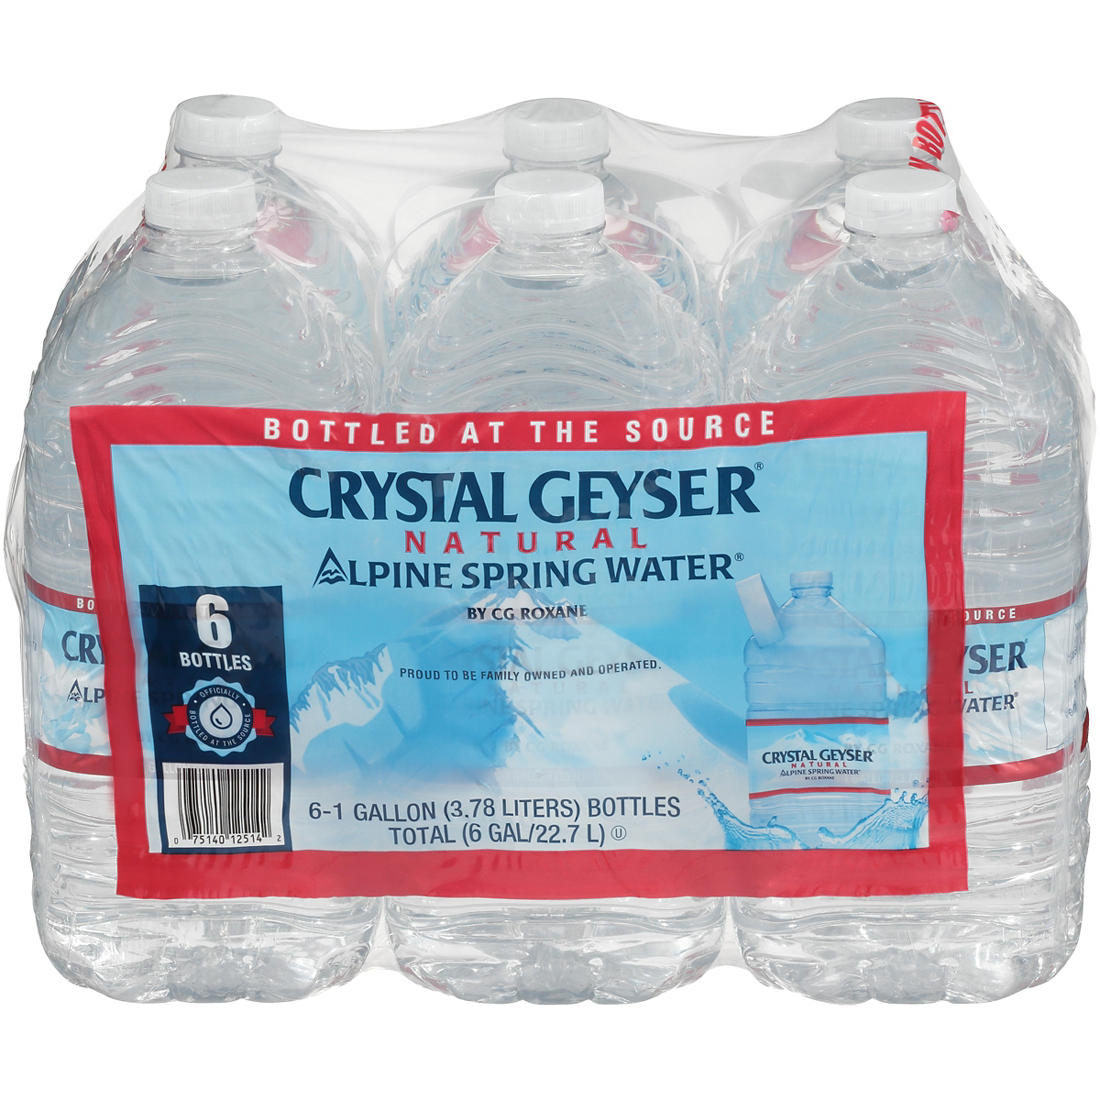 095ab793450e Crystal Geyser Natural Alpine Spring Water, 6 pk./1 gallon